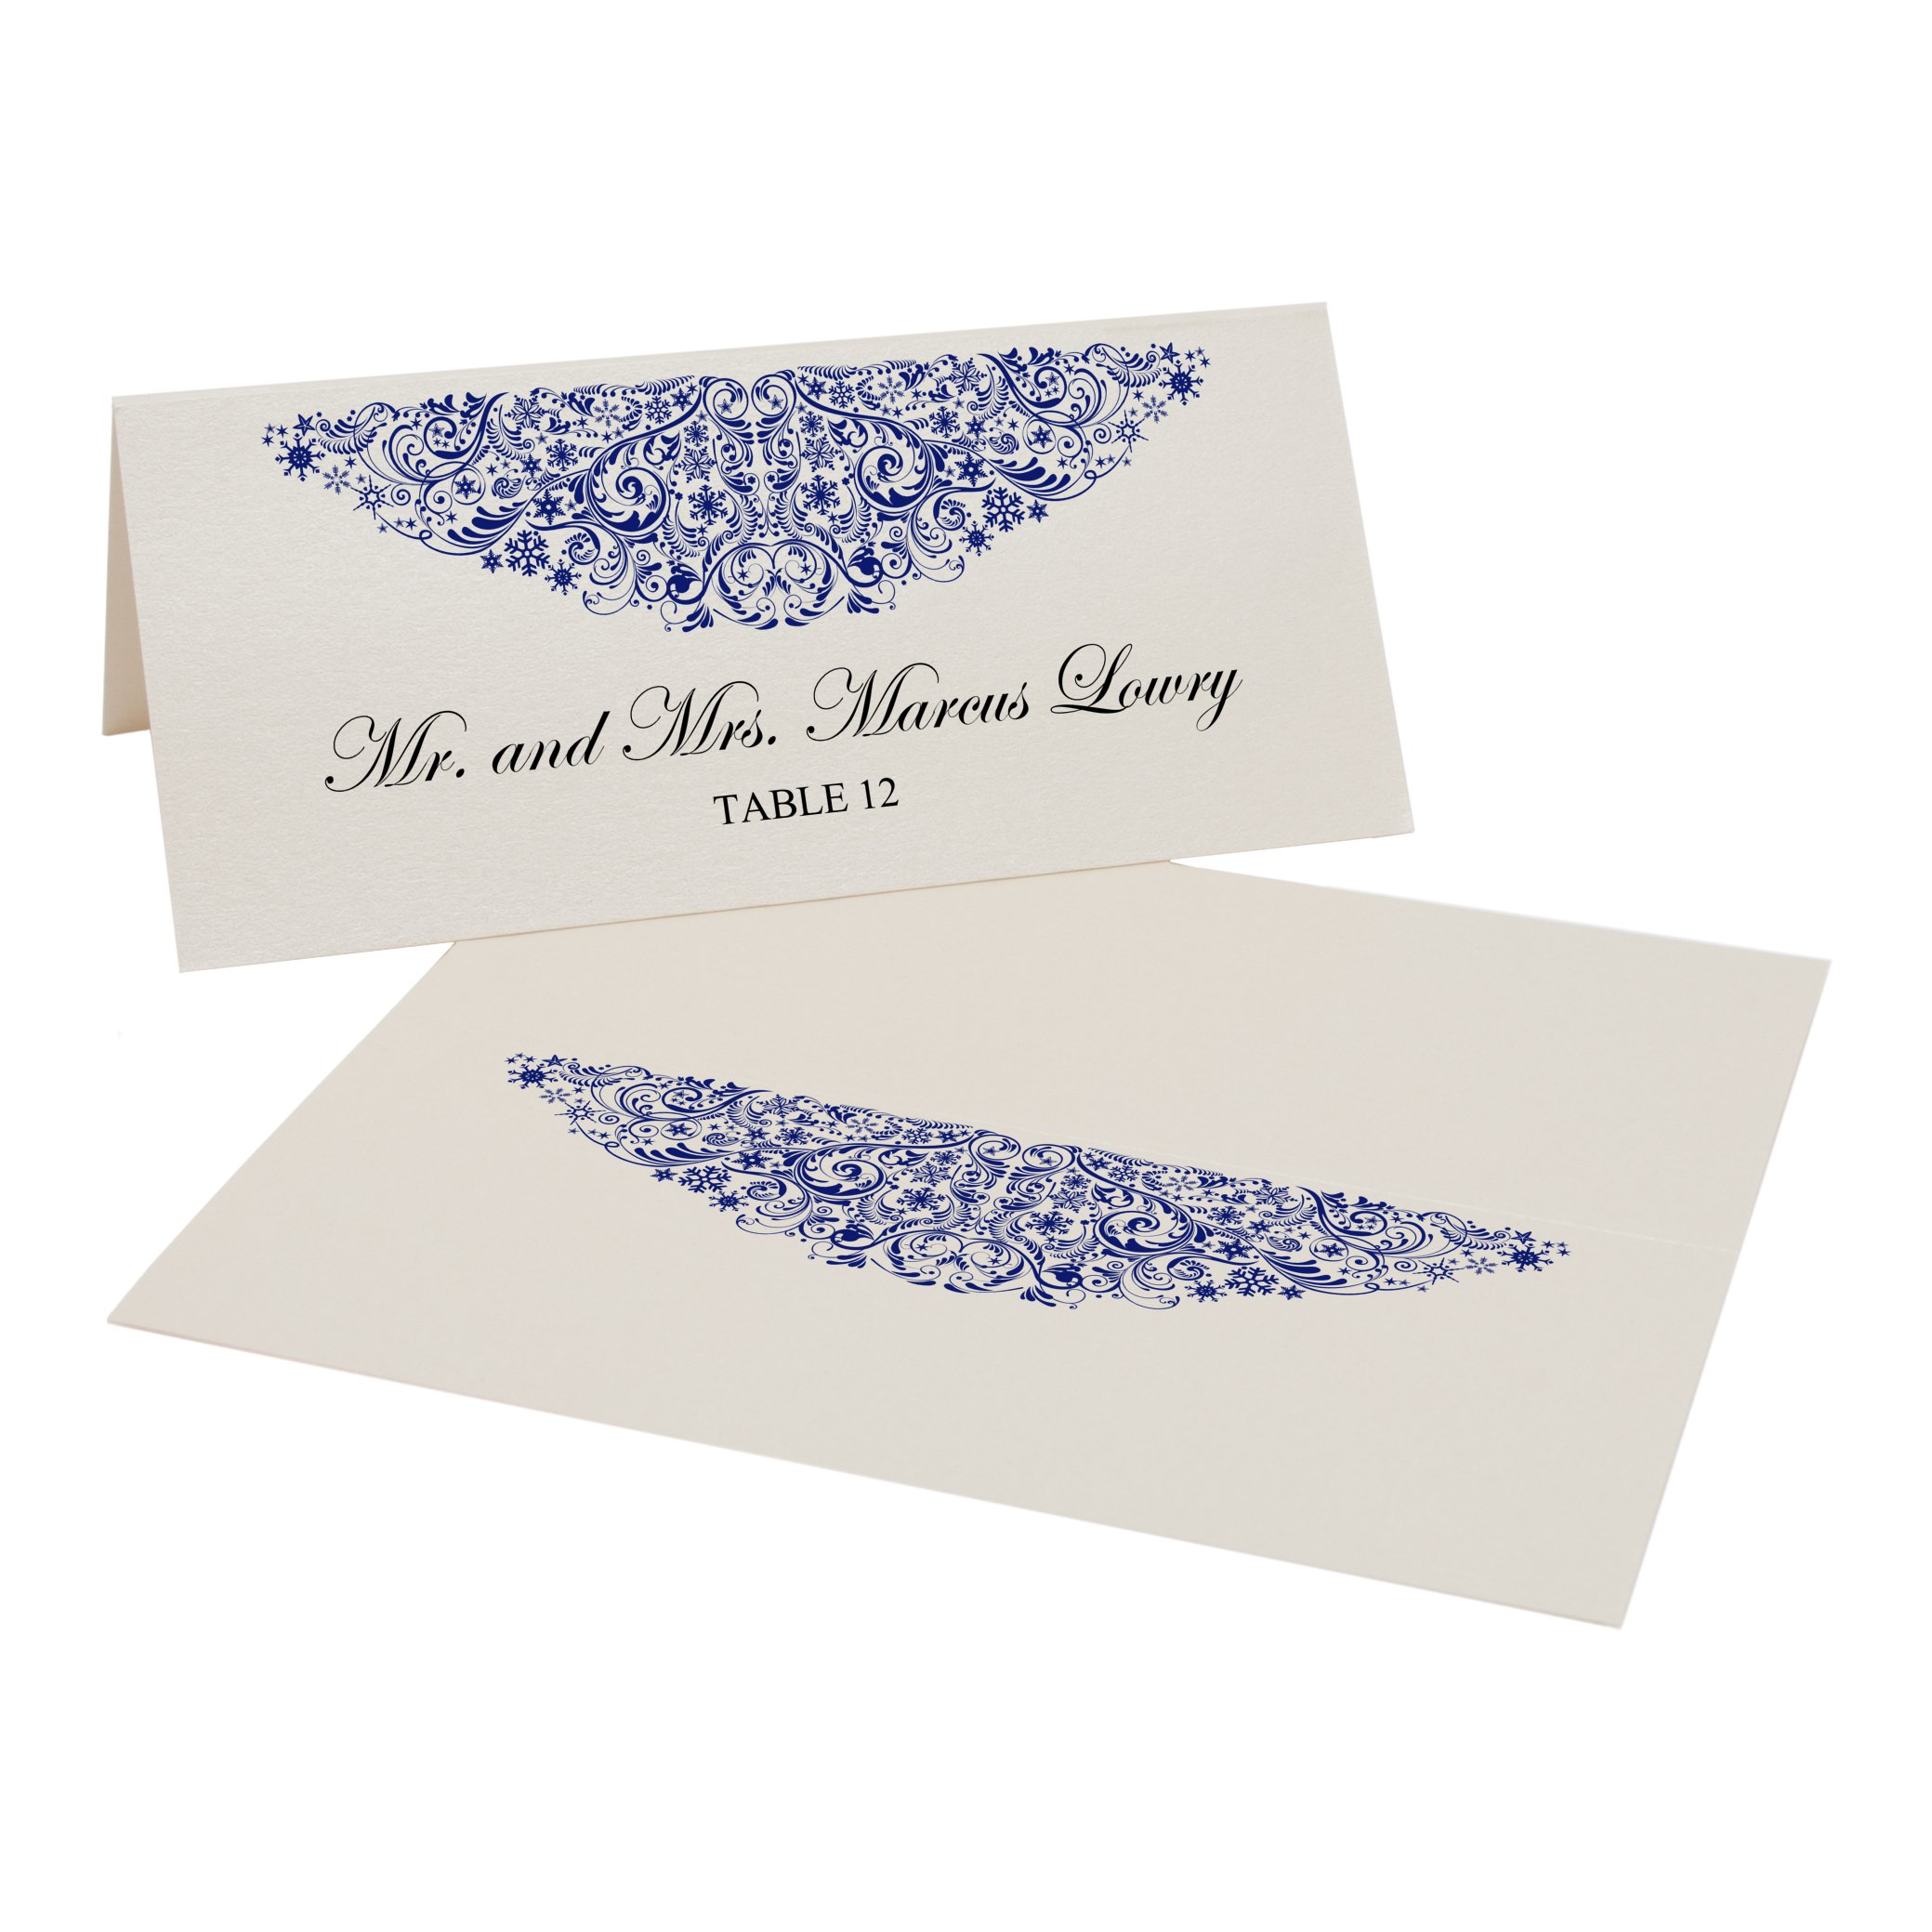 Vintage Snowflake Flourish Easy Print Place Cards, Champagne, Navy, Set of 350 (88 Sheets) by Documents and Designs